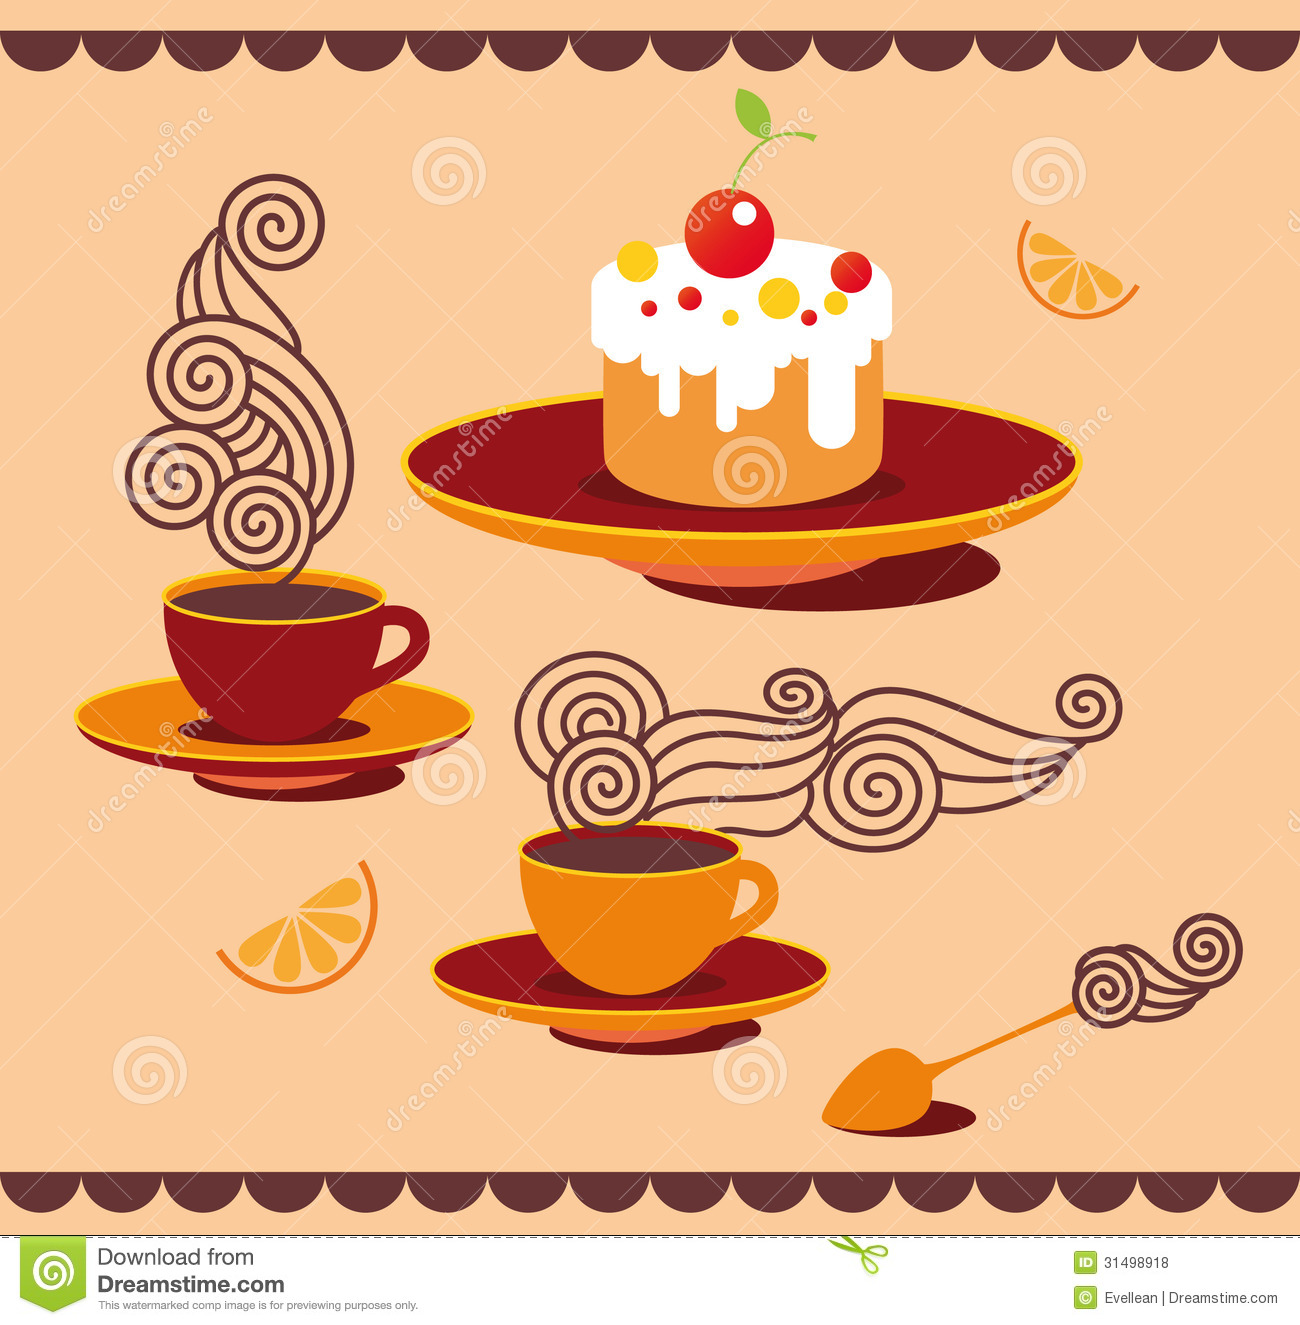 Fun Tea Set Royalty Free Stock Photos - Image: 31498918